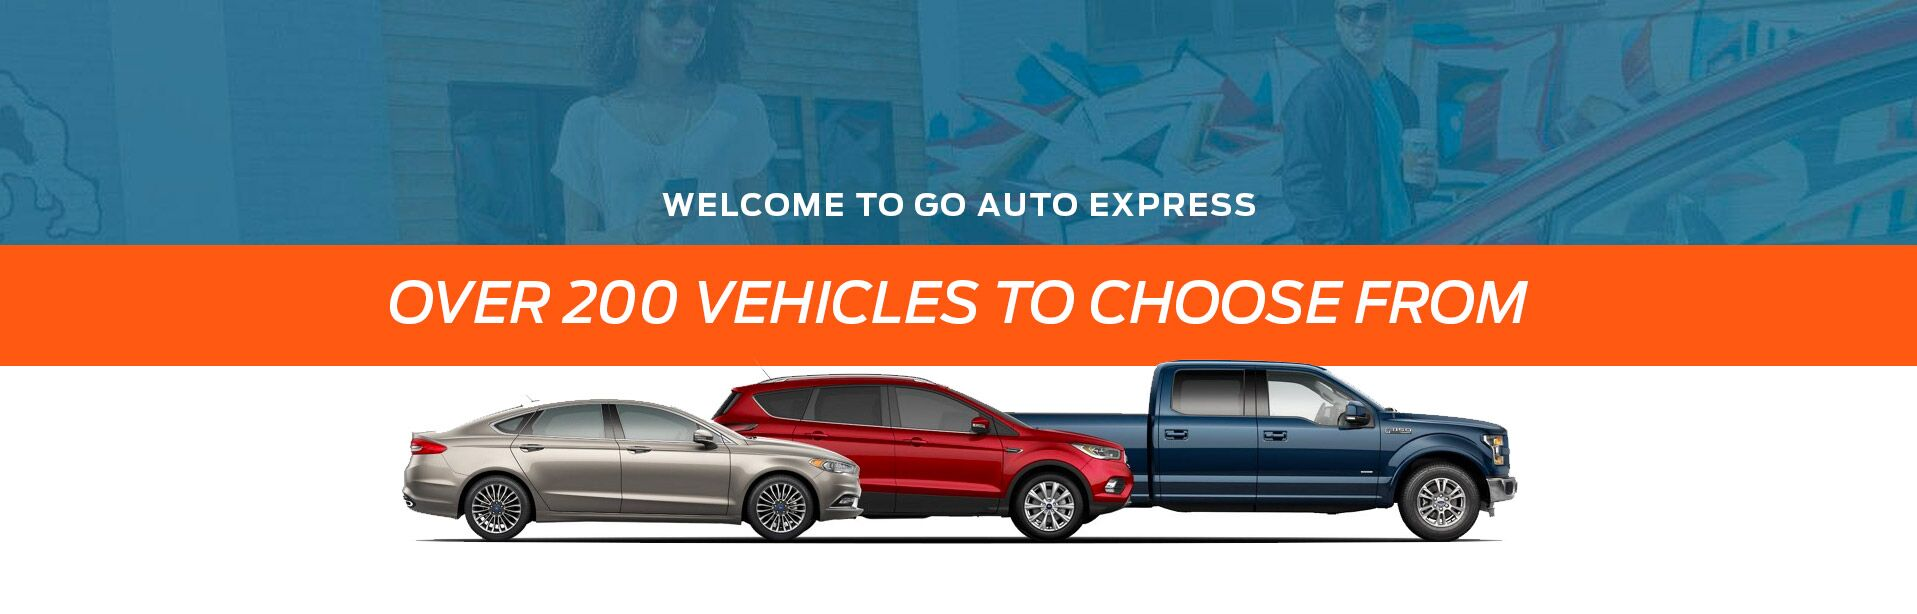 Over 200 Vehicles at Go Auto Express